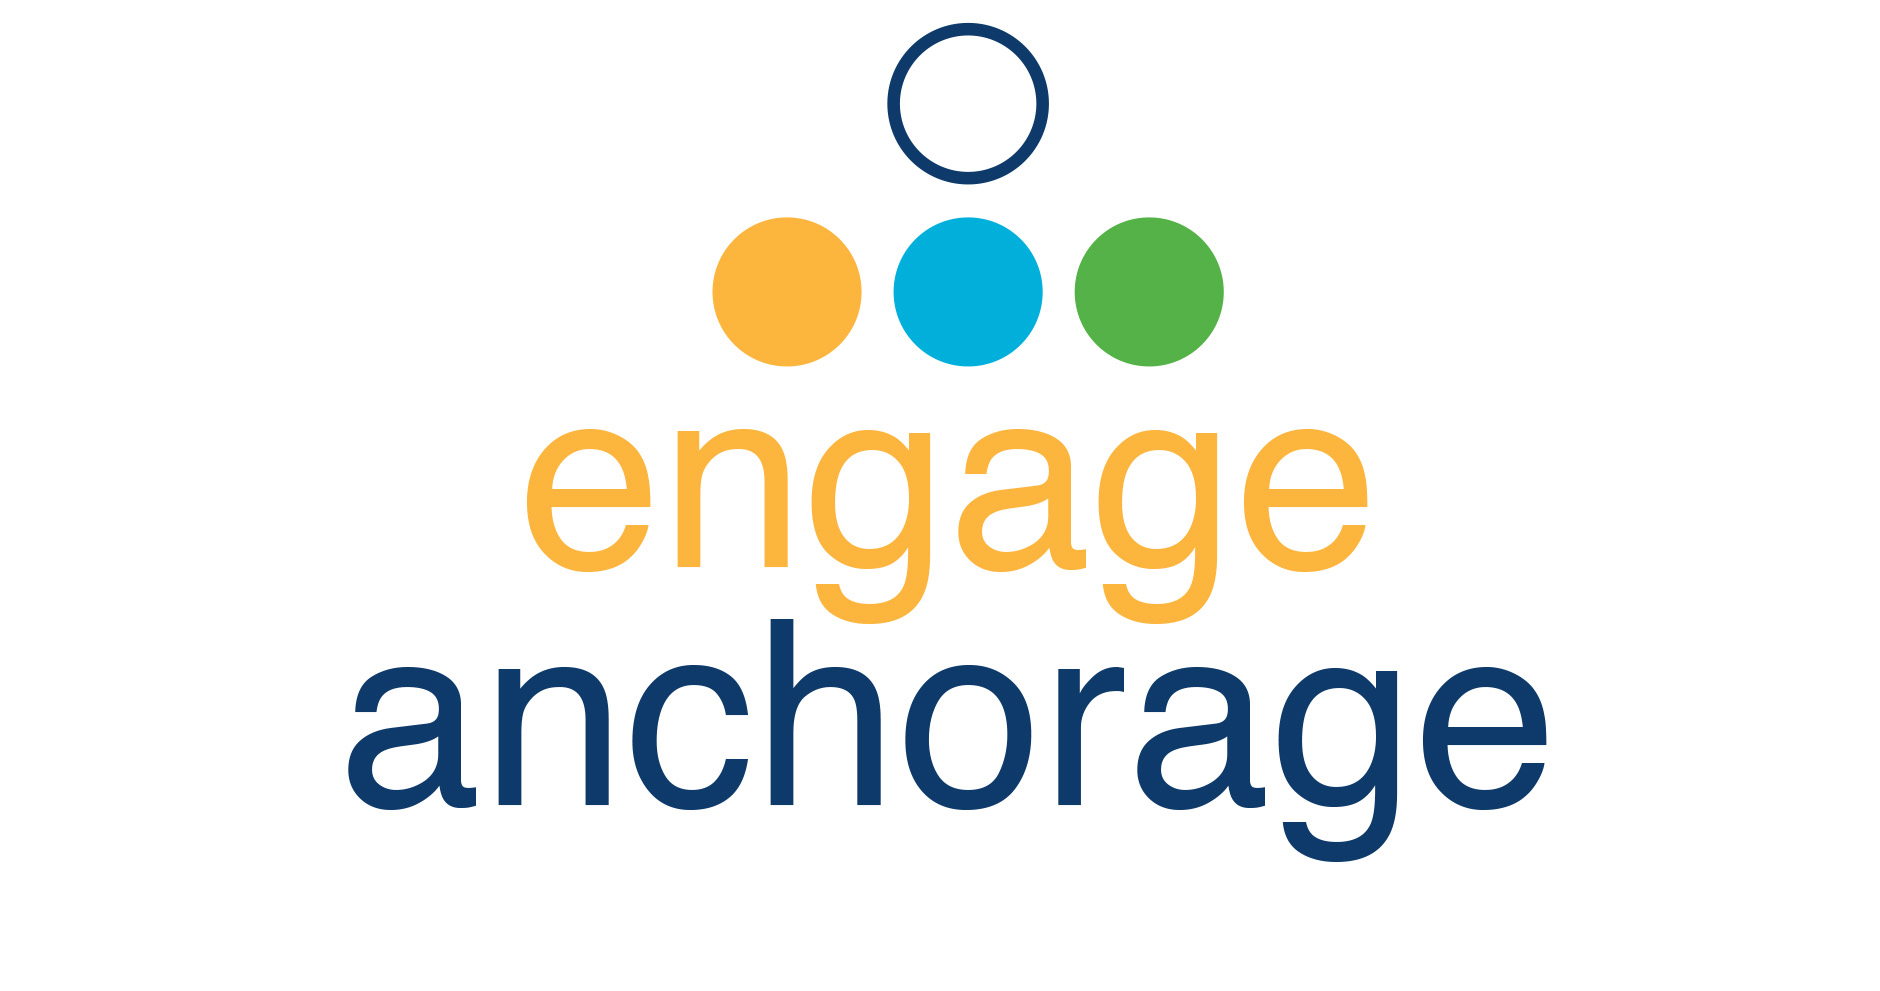 EngageAnchorage